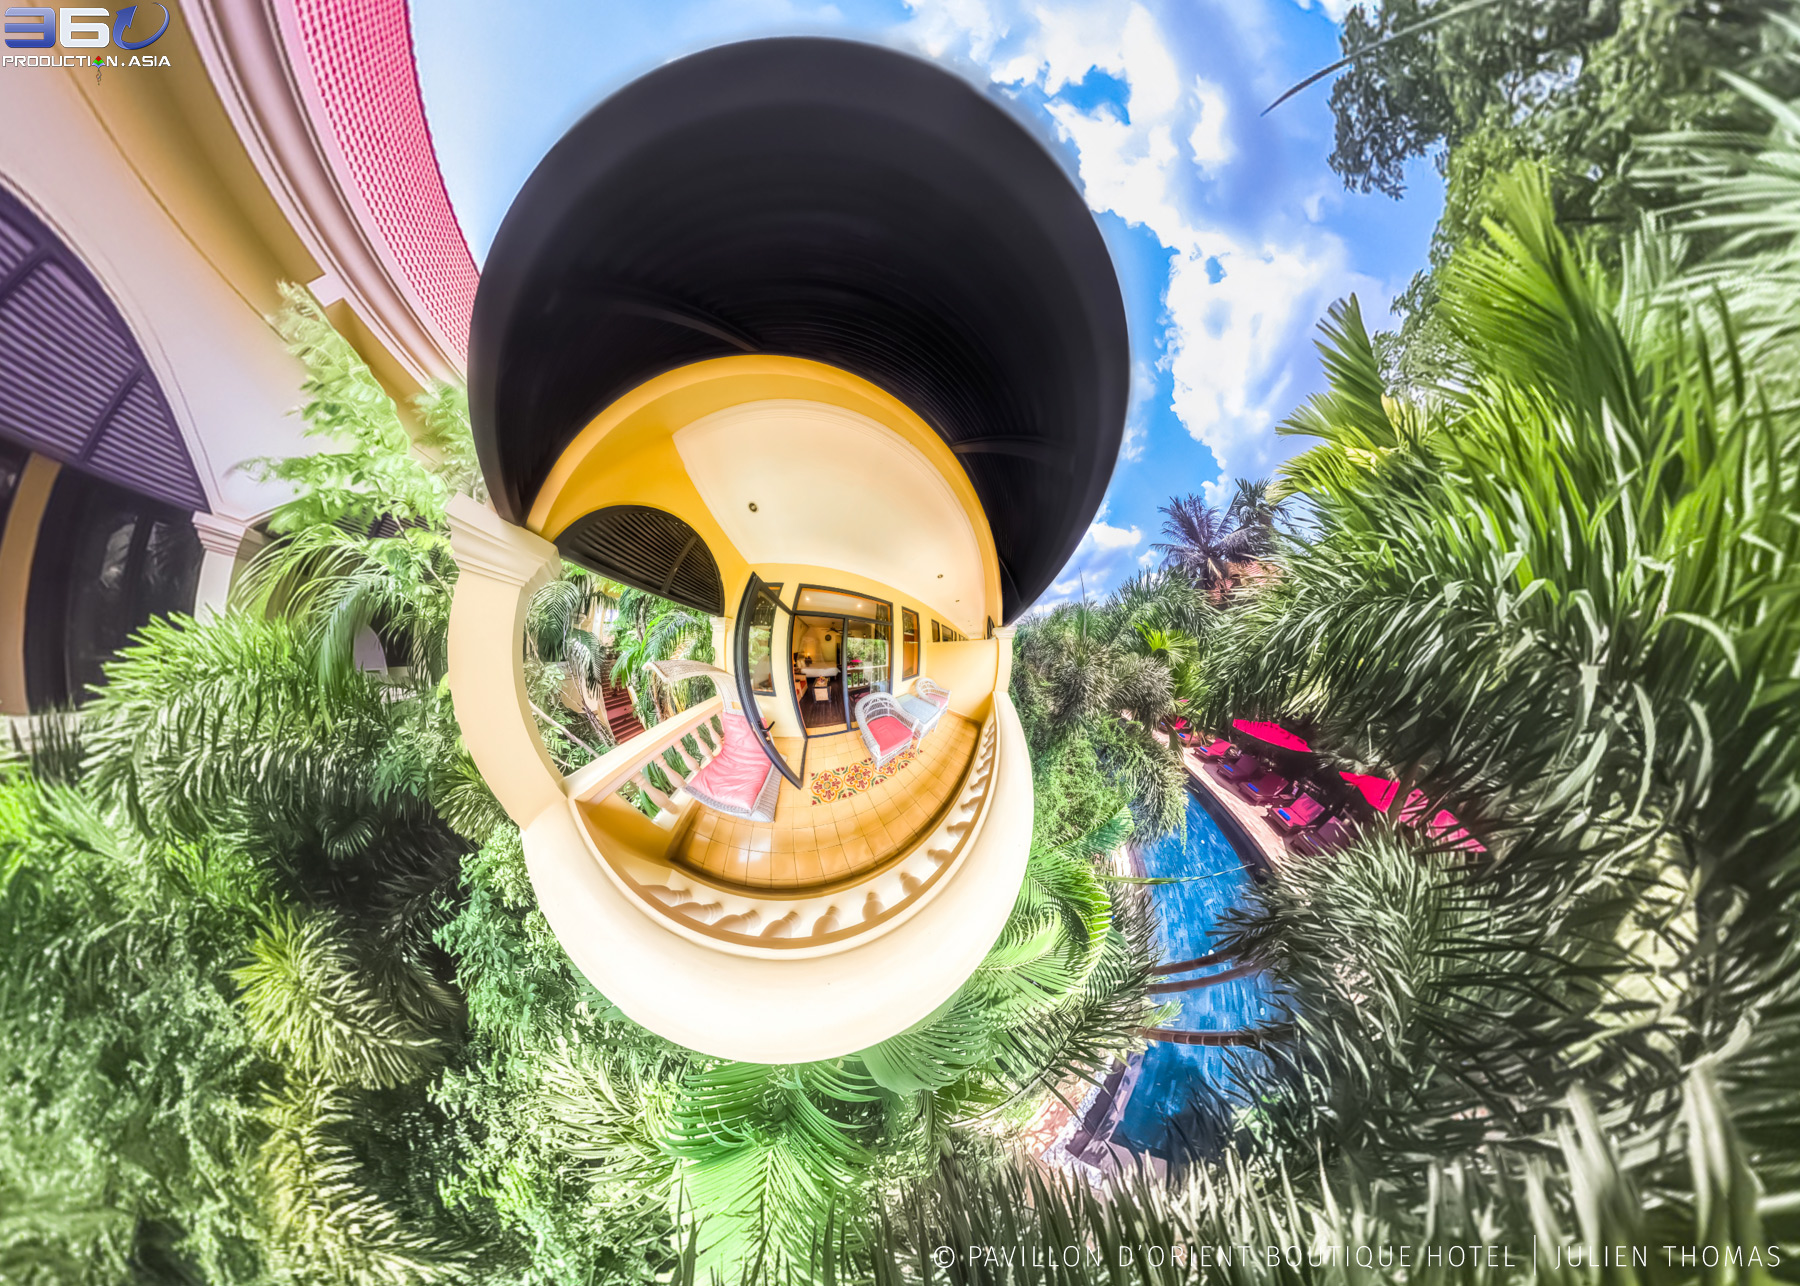 Mini World projection from 360 photo sphere in the room balcony facing the swimming pool area at Pavillon d'Orient Boutique Hotel, Siem Reap - Cambodia.